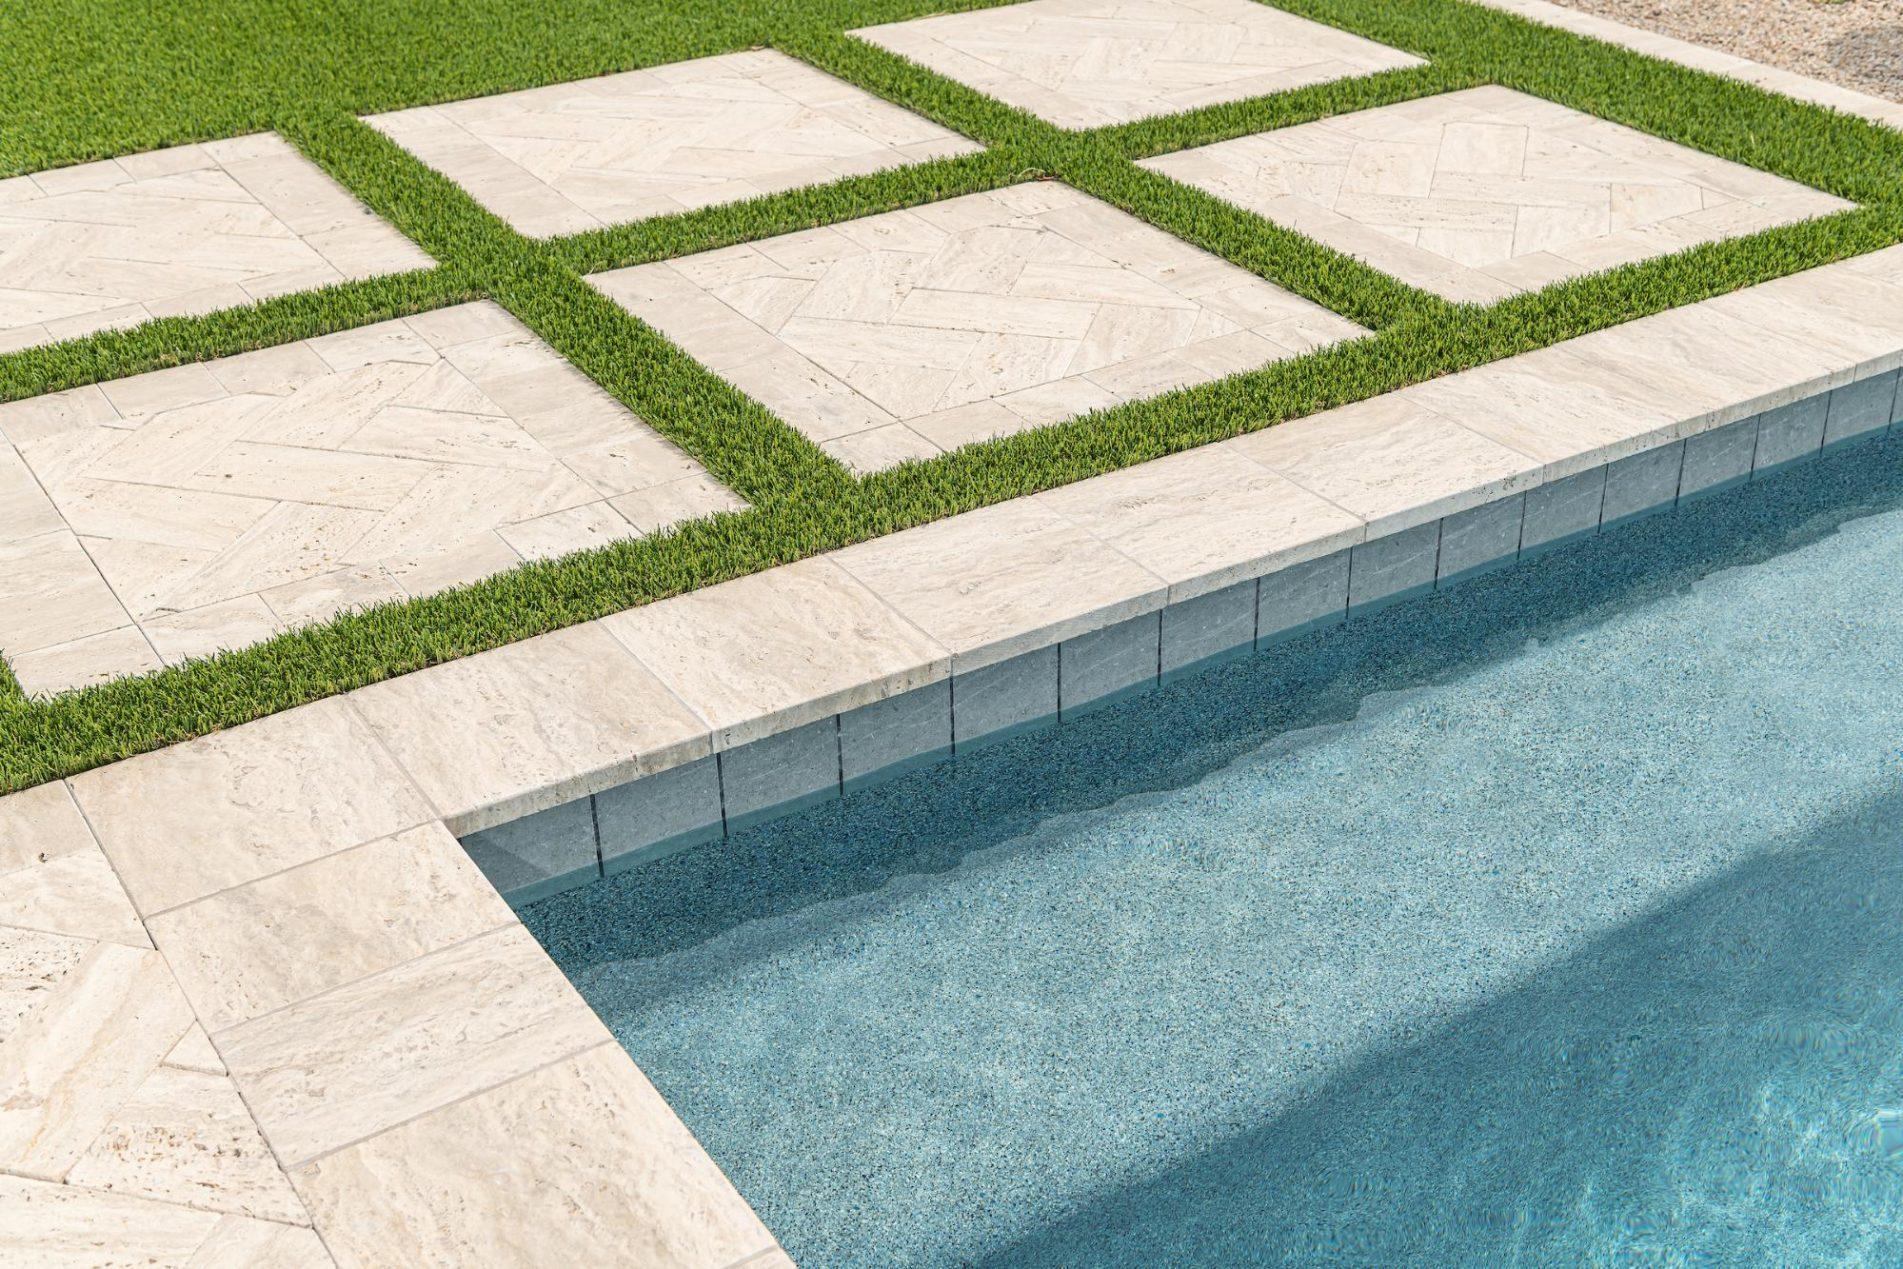 Best Waterline Outline Tile For Your Pool